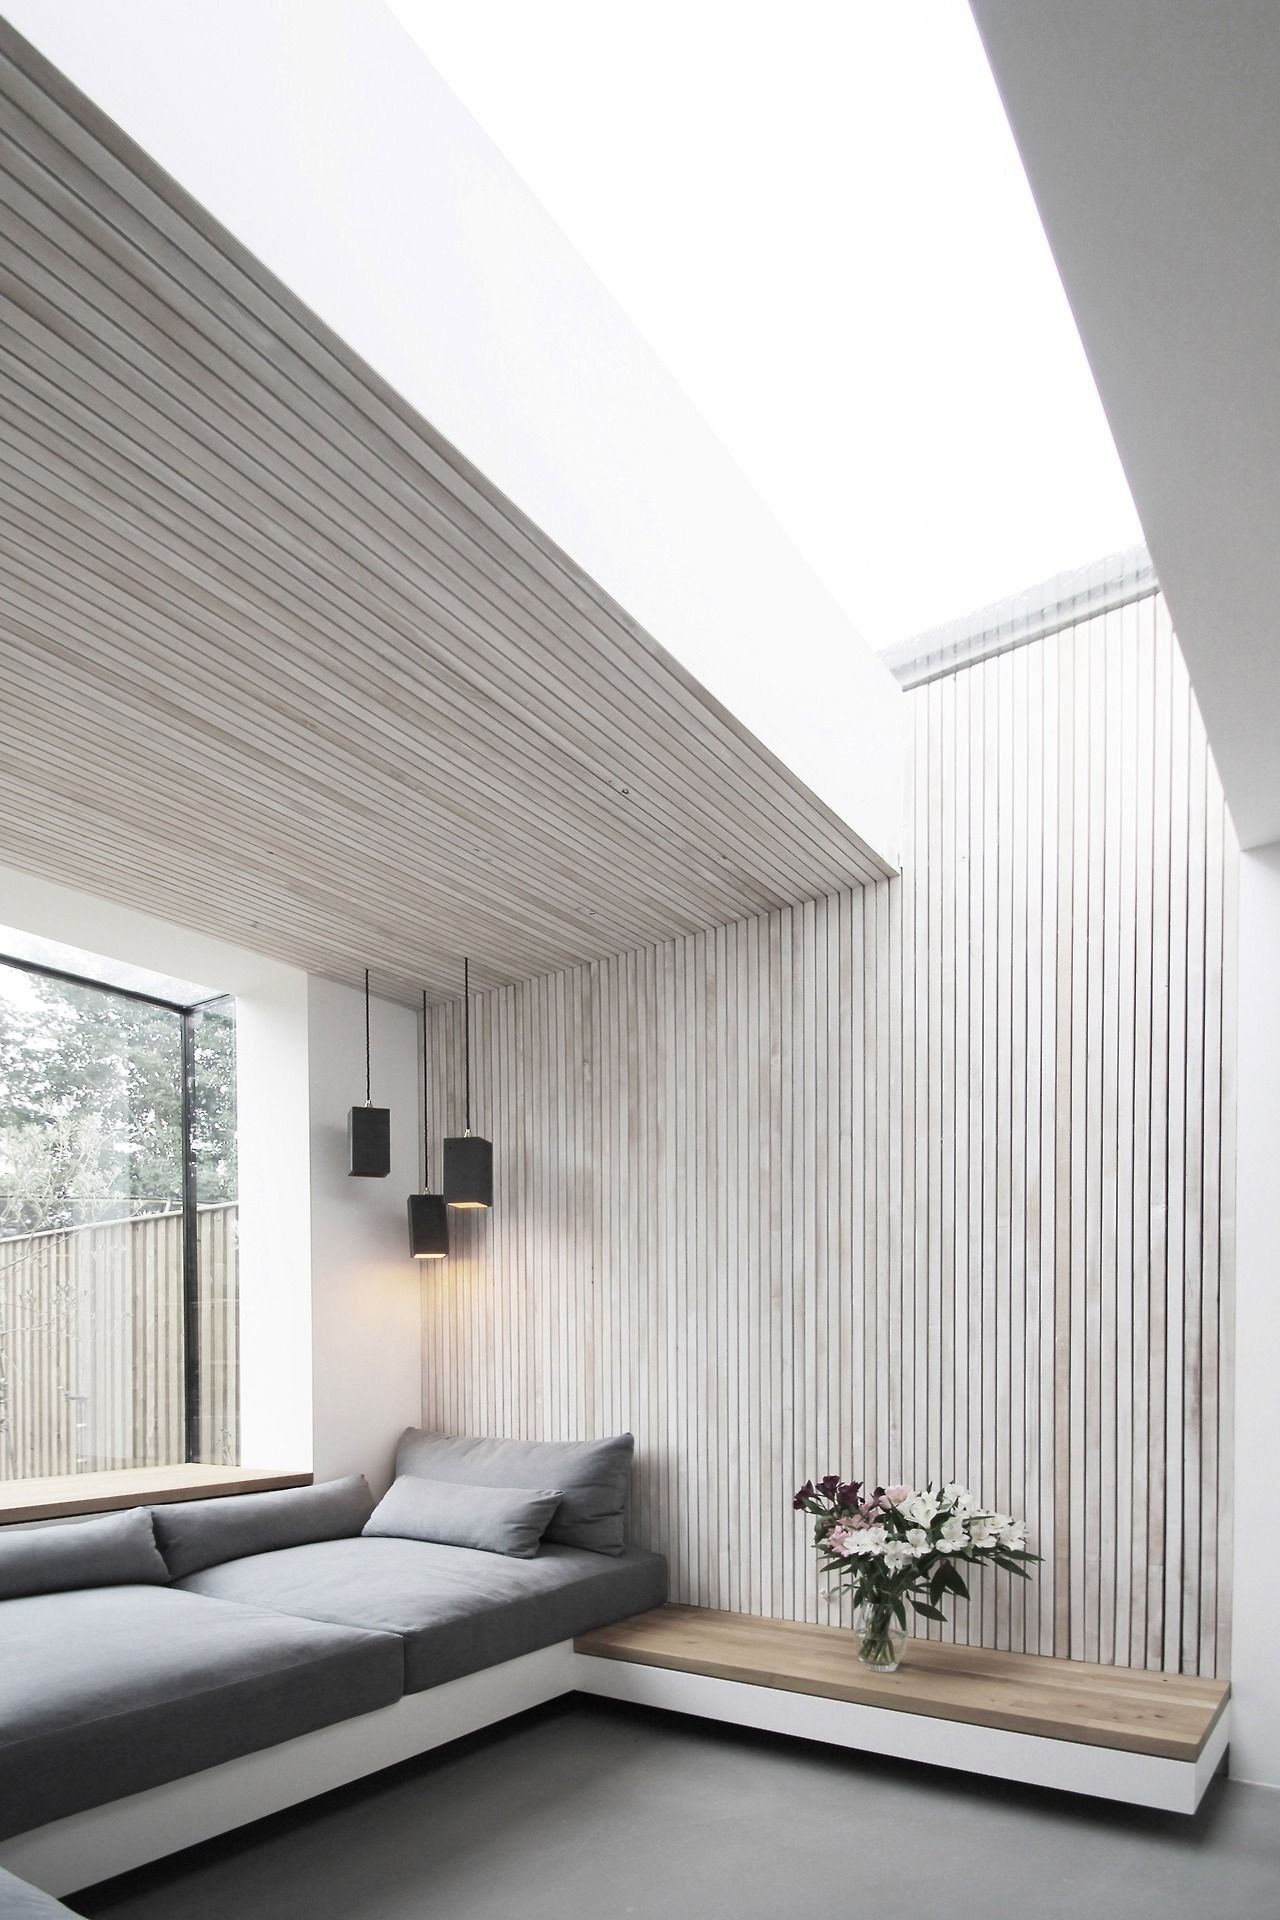 Scandinavian modern interior outdoors upknorth Ultra minimal white washed timber slat walls and ceiling Design by Studio 1 Architects